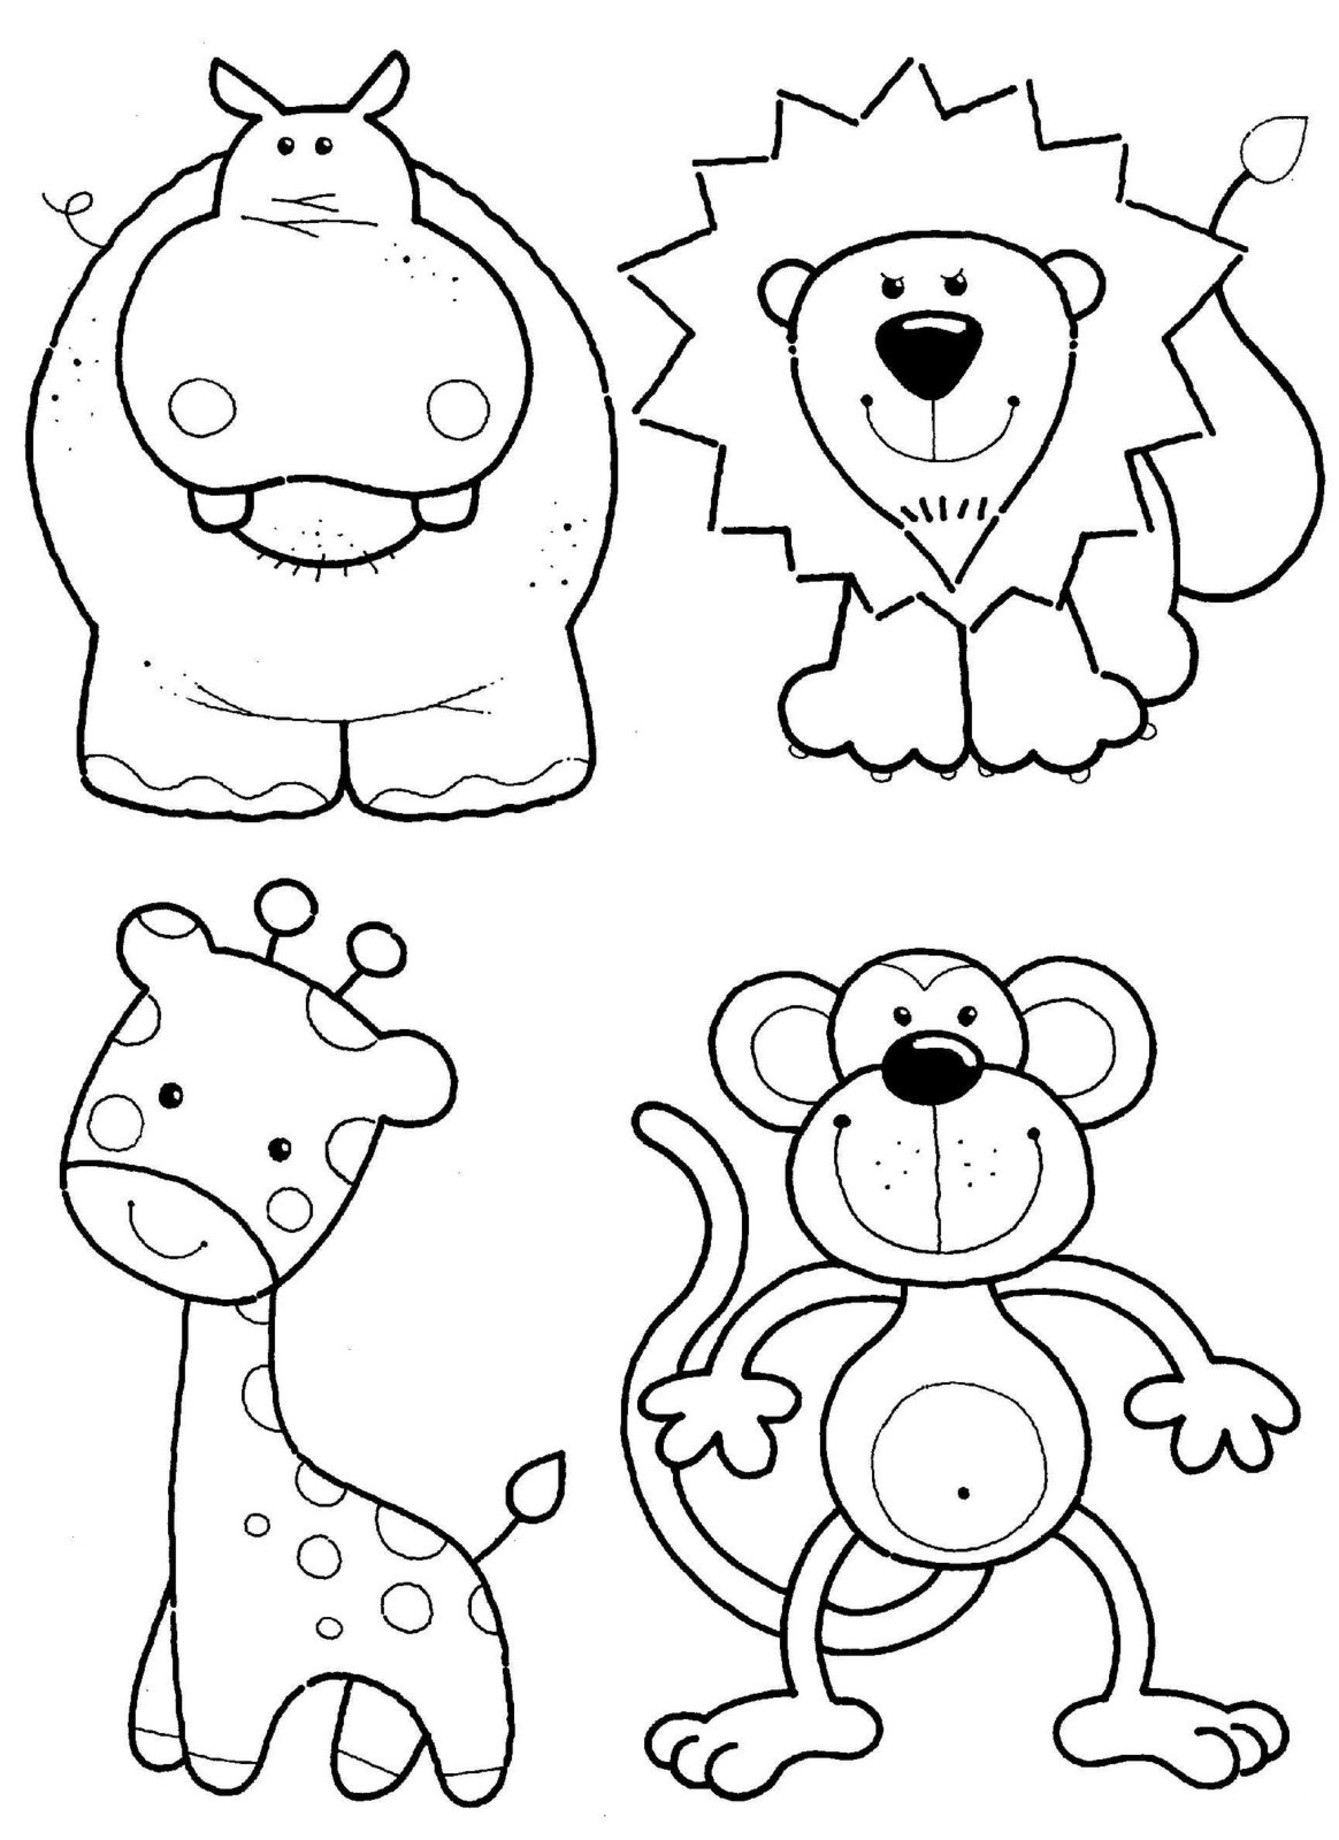 fun coloring pictures hamster coloring pages best coloring pages for kids fun pictures coloring